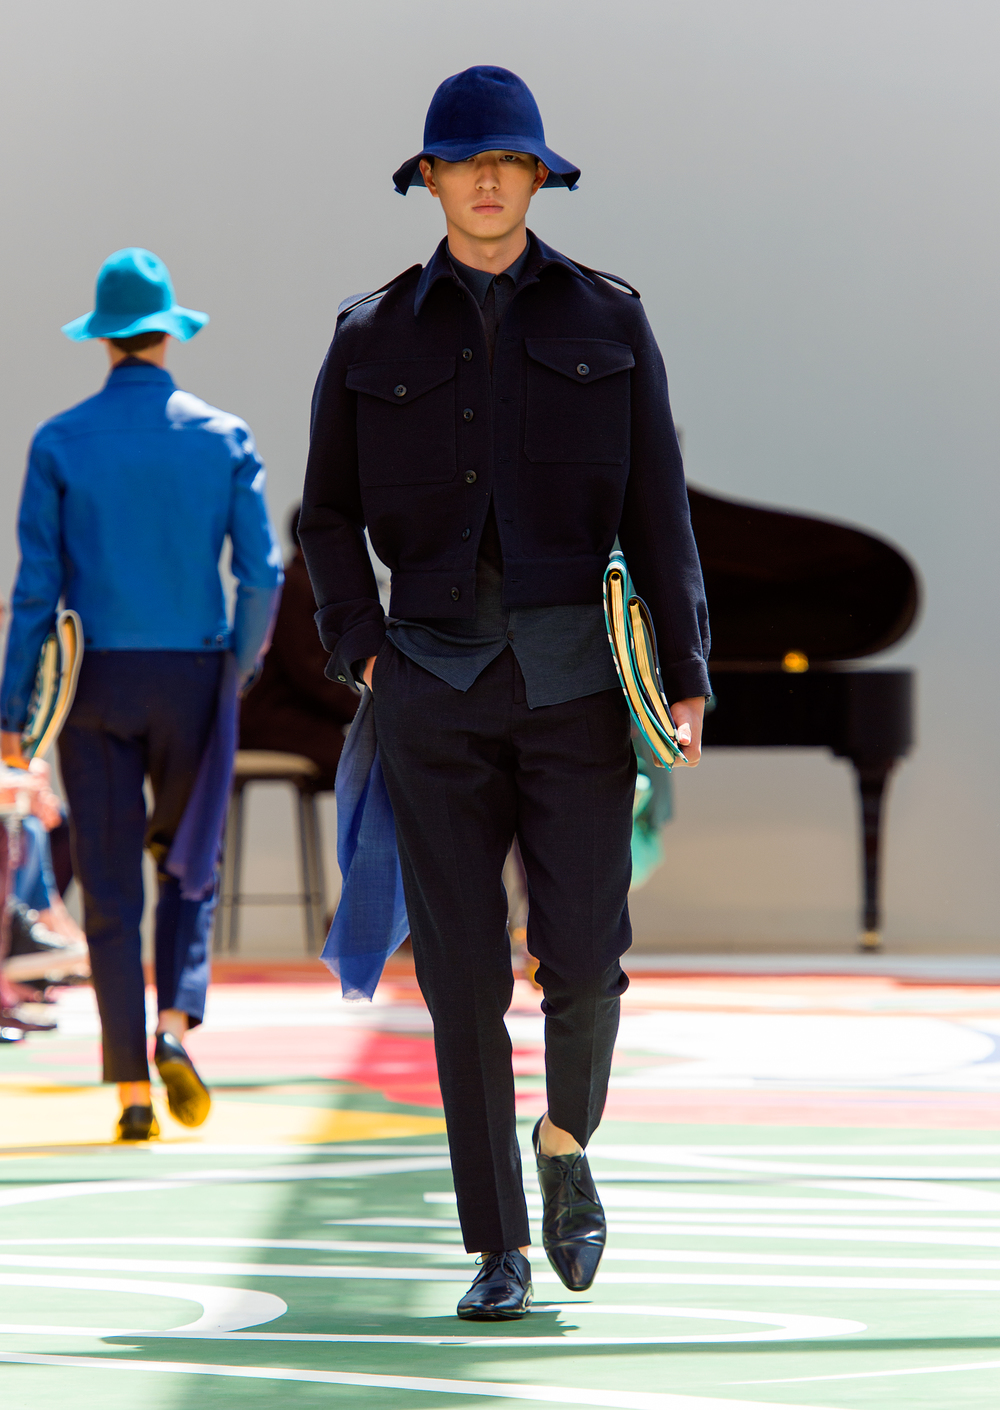 Burberry Prorsum Menswear Spring Summer 2015 Collection - Look 34.jpg